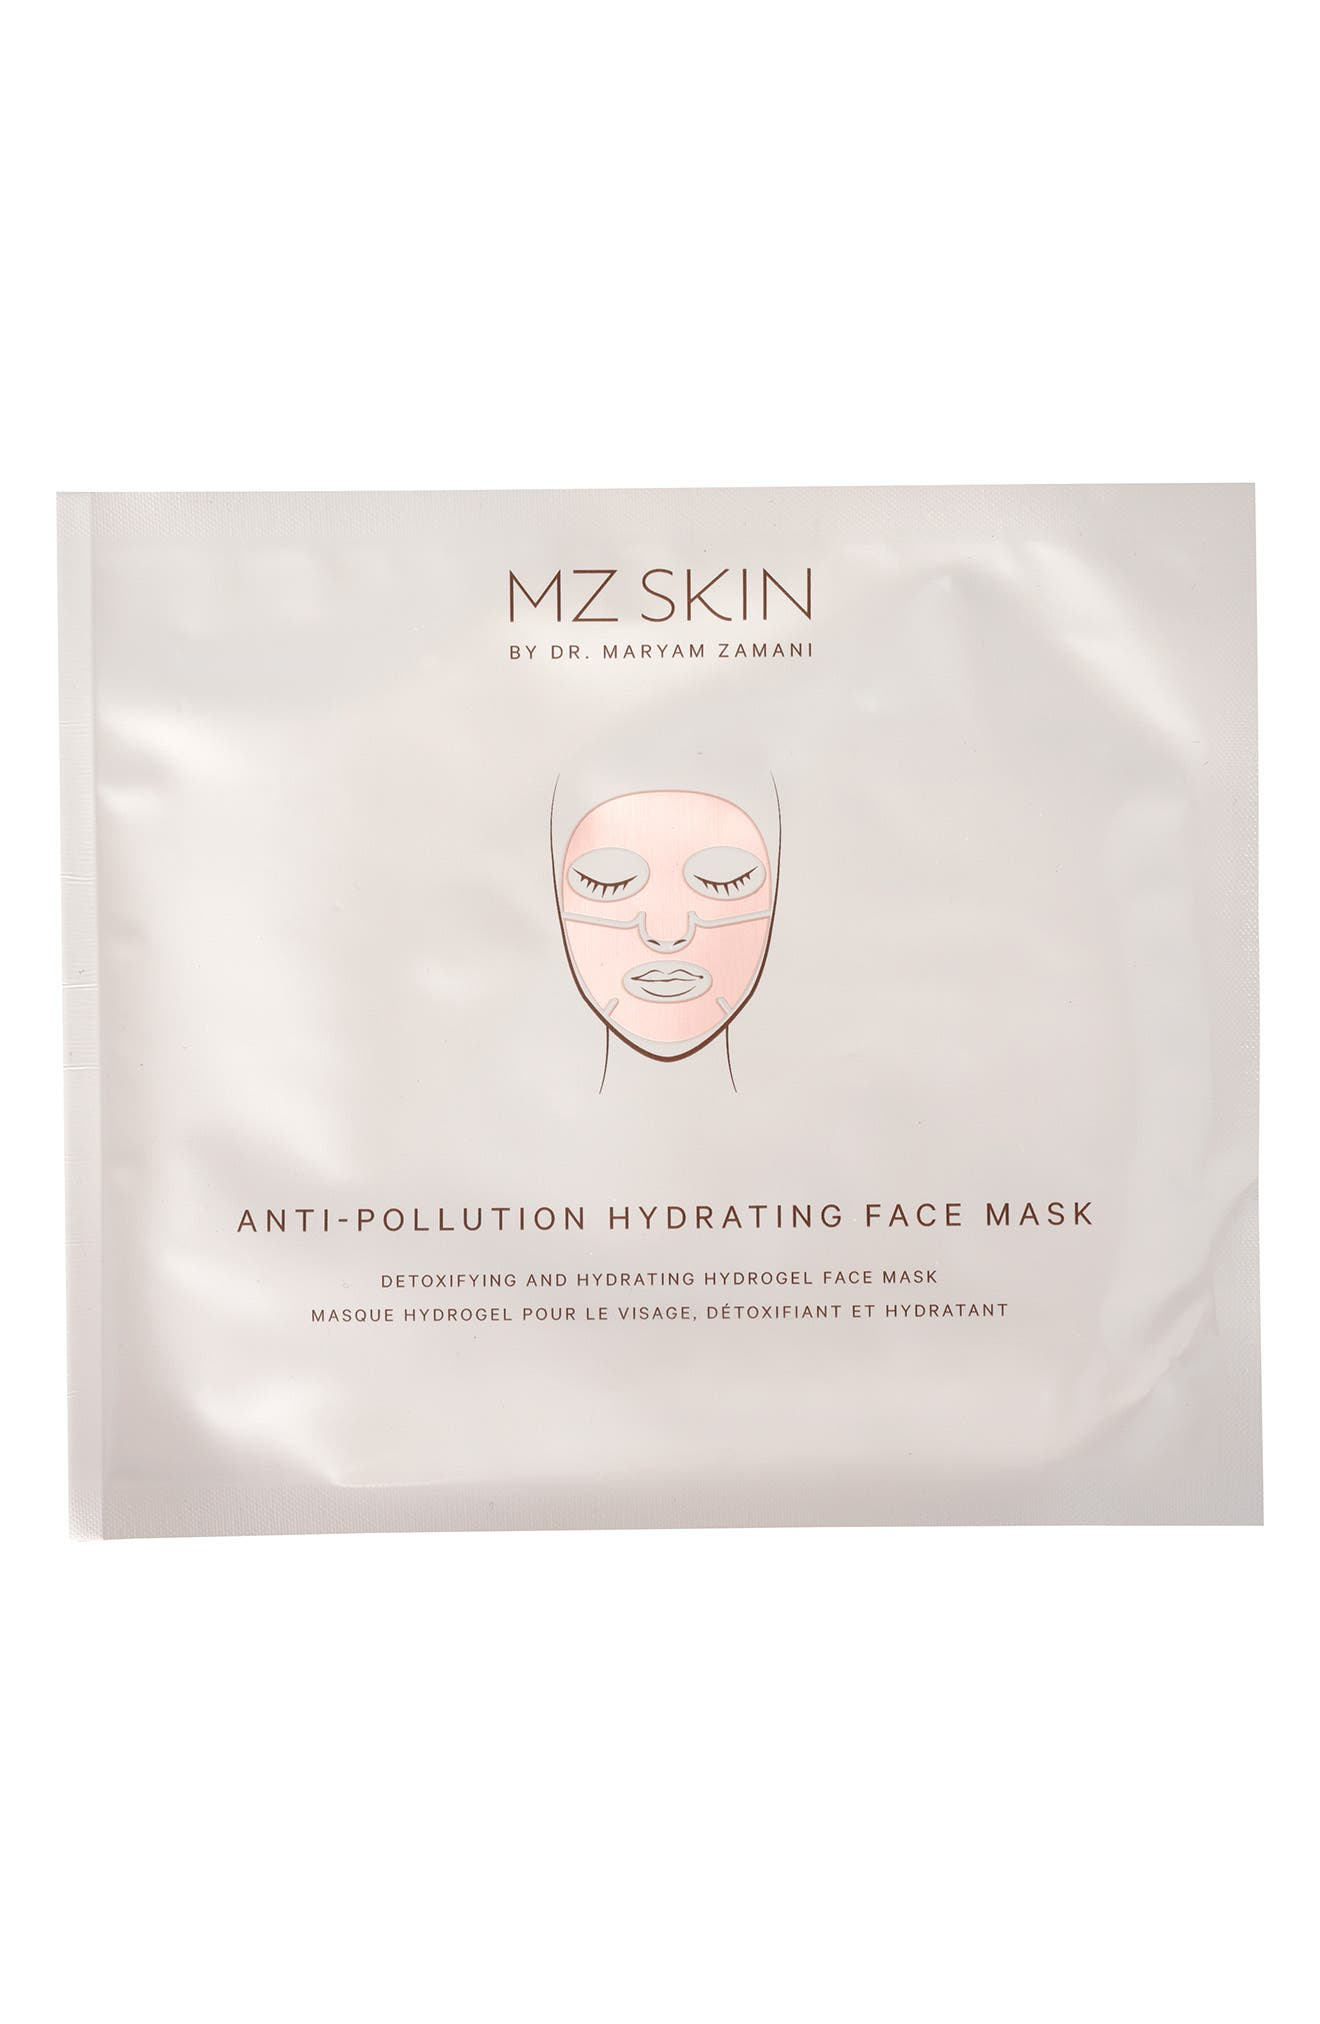 Anti-Pollution Hydrating Face Mask